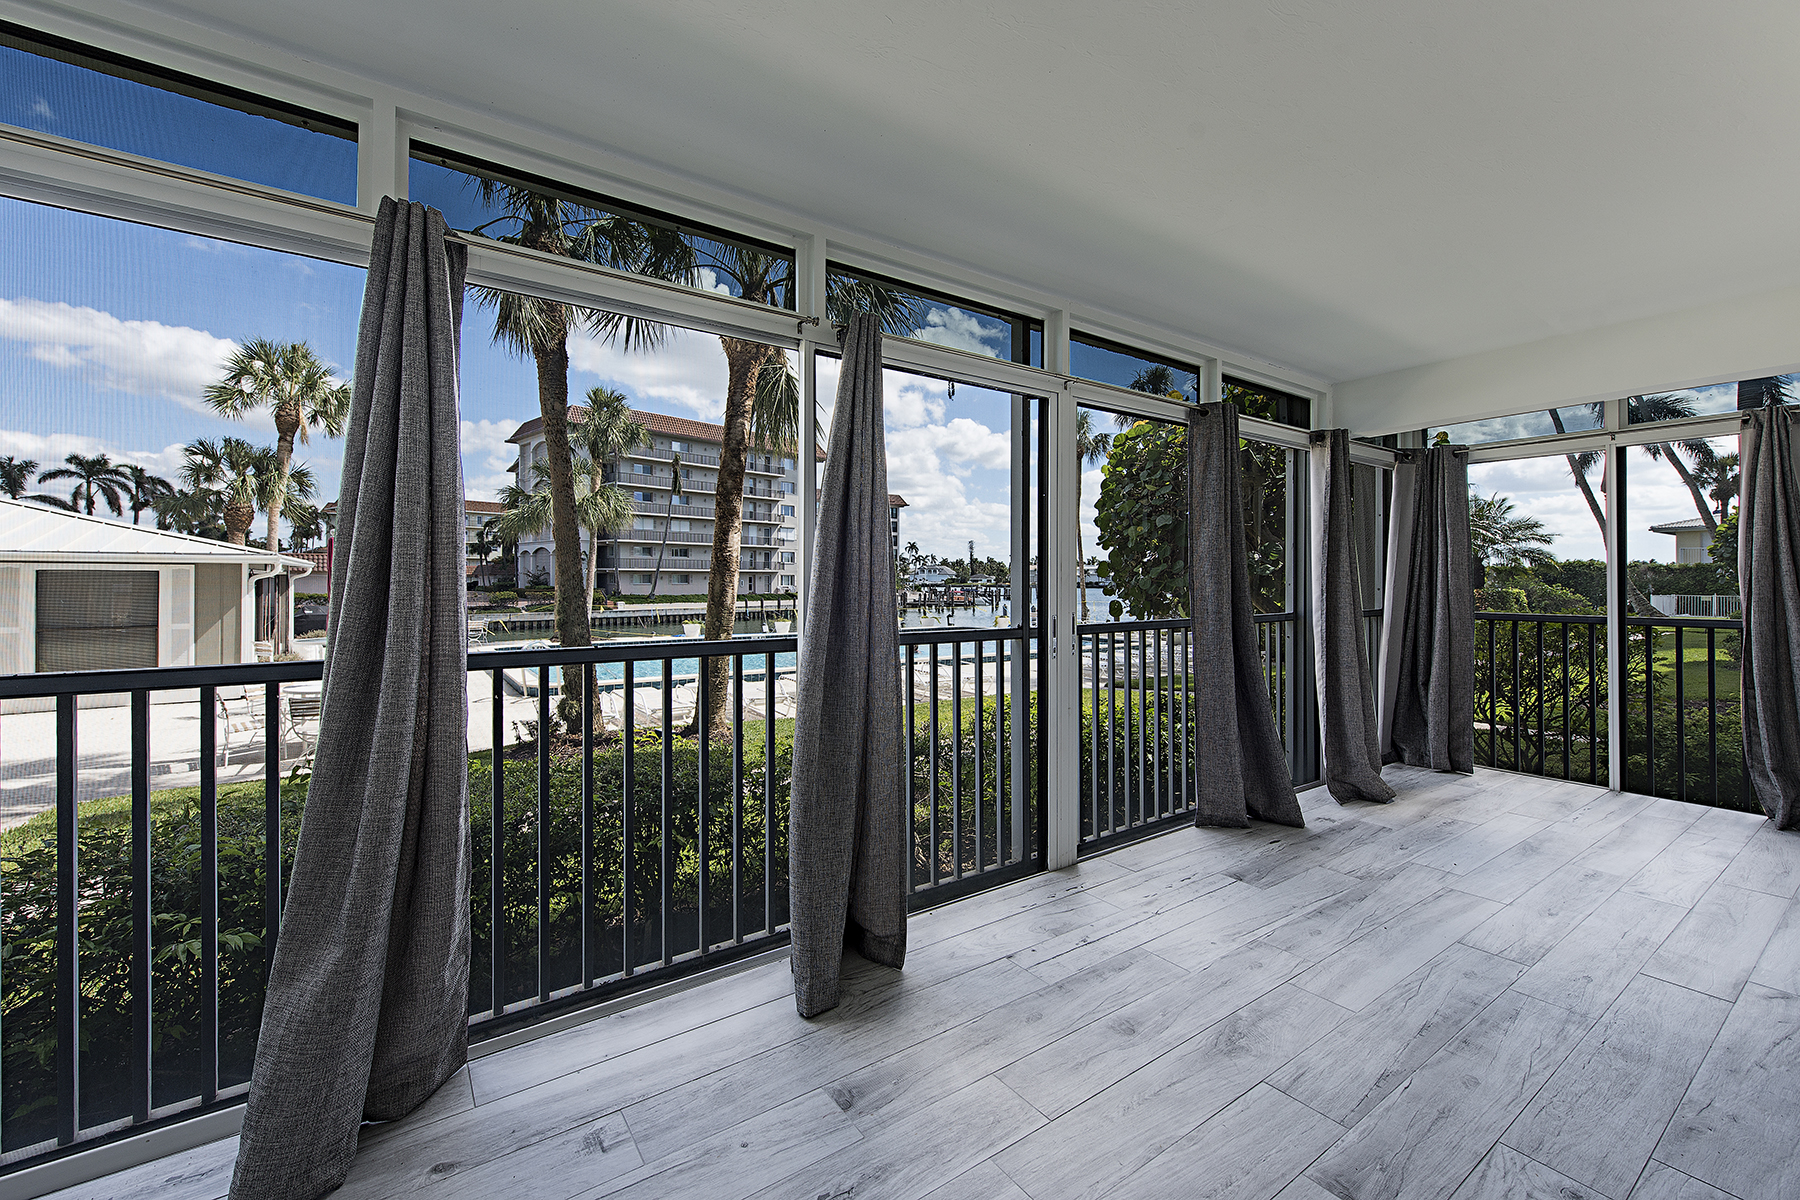 Condominium for Sale at MOORINGS - WINDSOR COURT 2880 Gulf Shore Blvd N 104, Naples, Florida 34103 United States